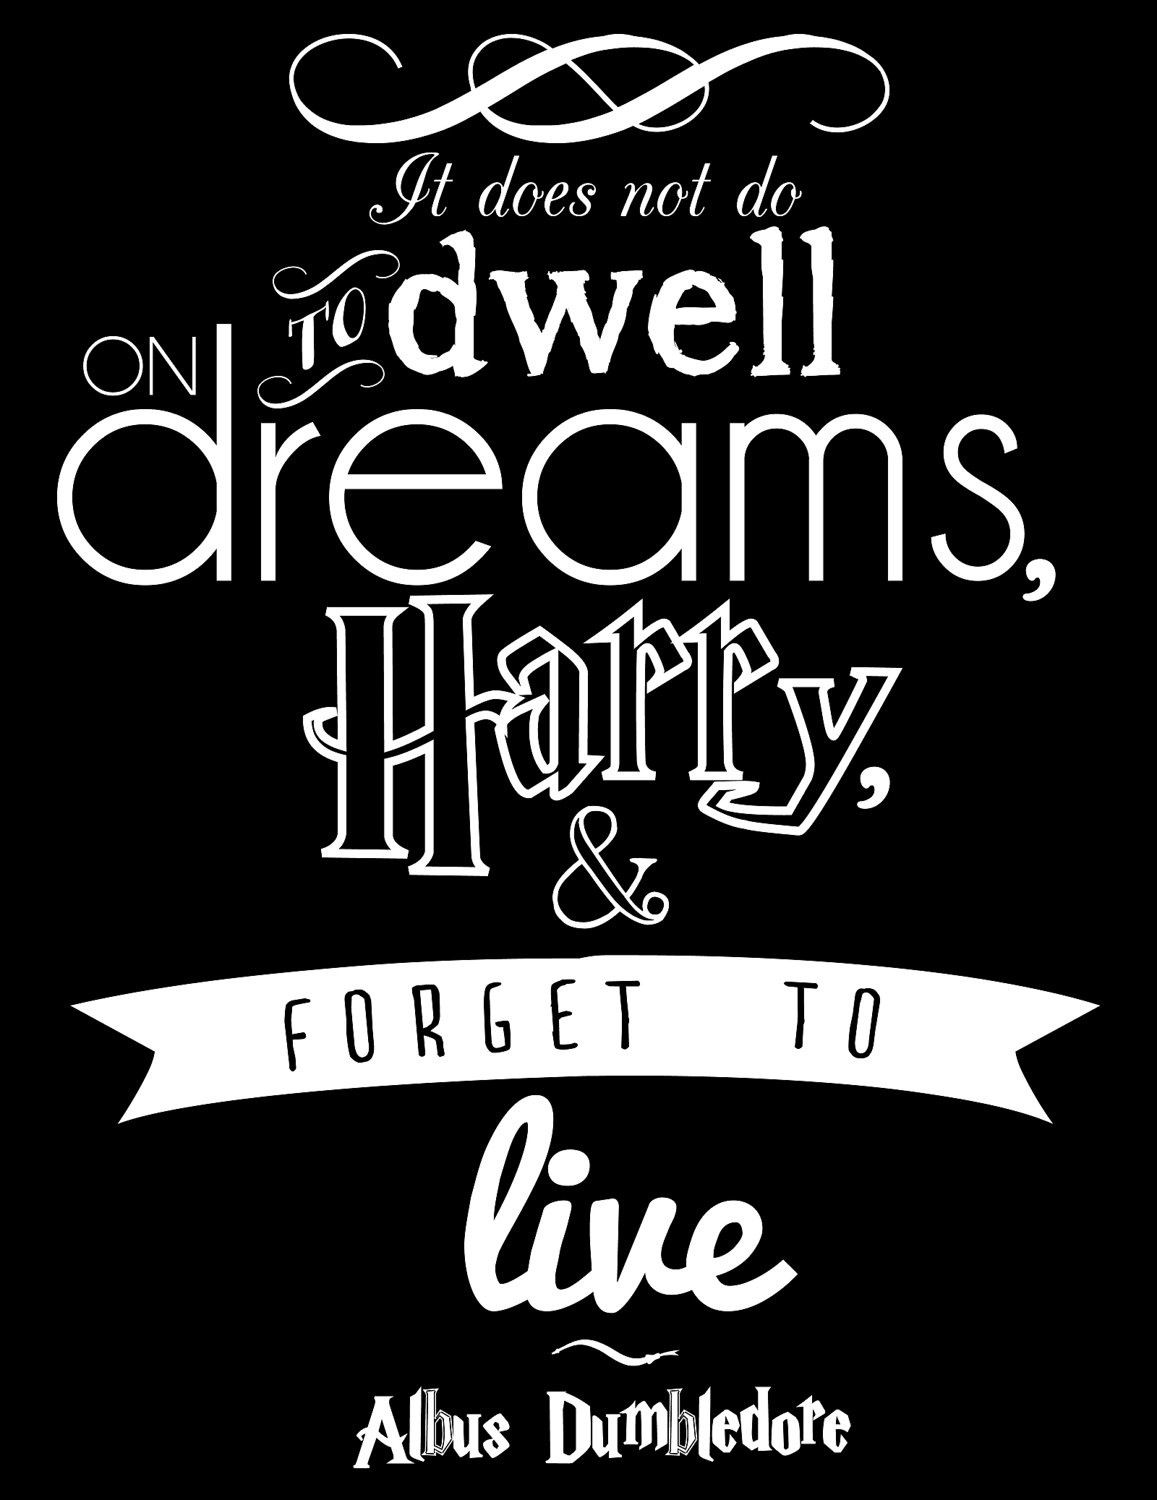 Hp Quotes Pinhogwarts School Of Witchcraft And Wizardry On Quotes